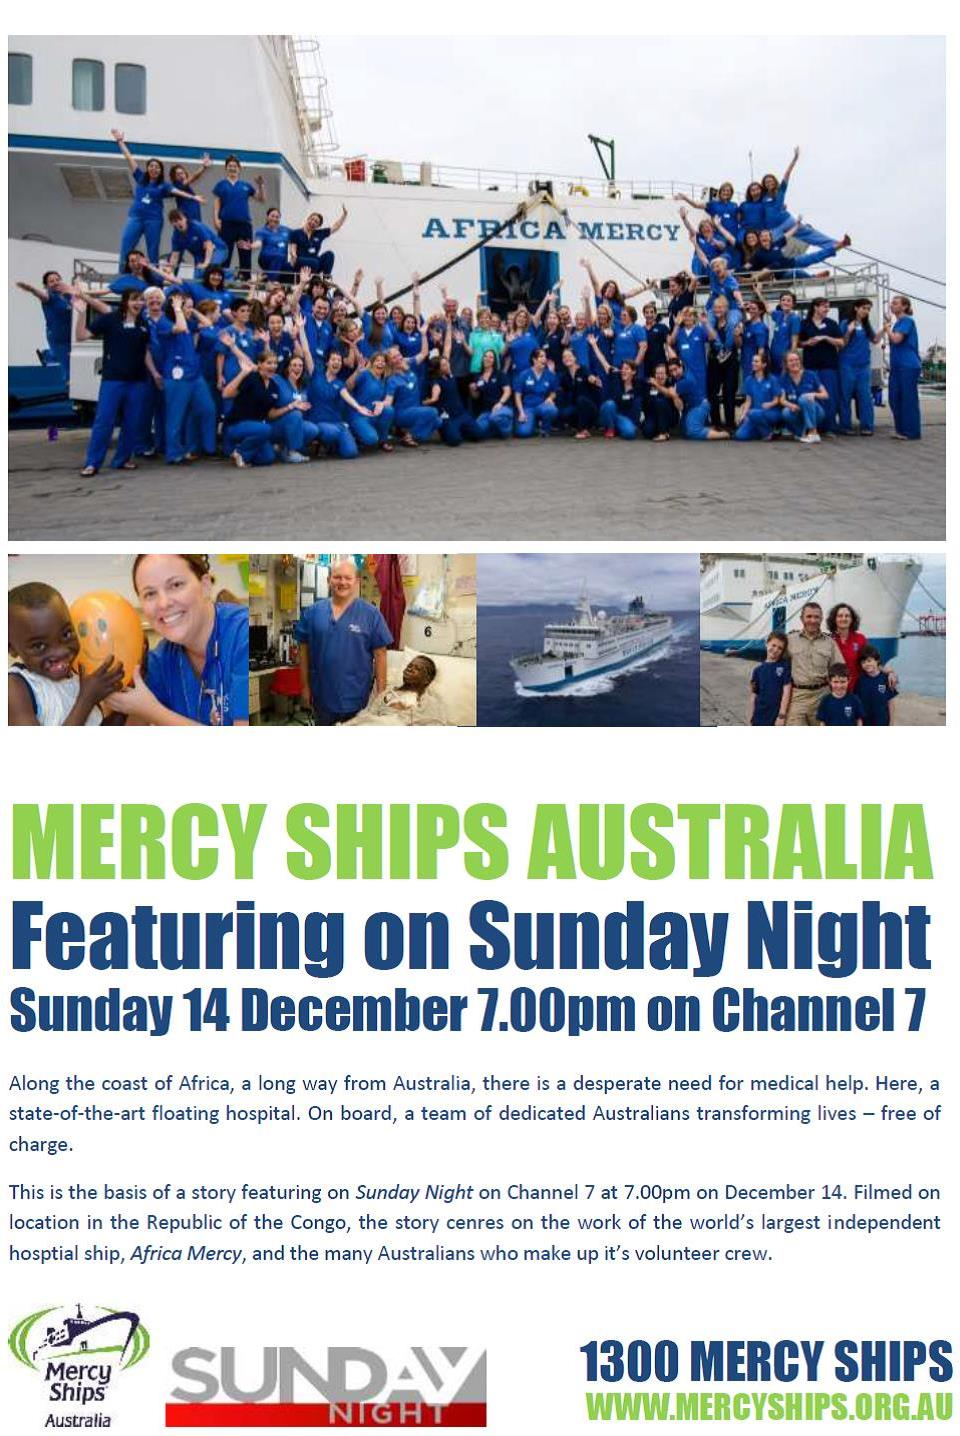 Mercy ships,mollymook,beach,ocean swimmers,Africa,Mercy,ships